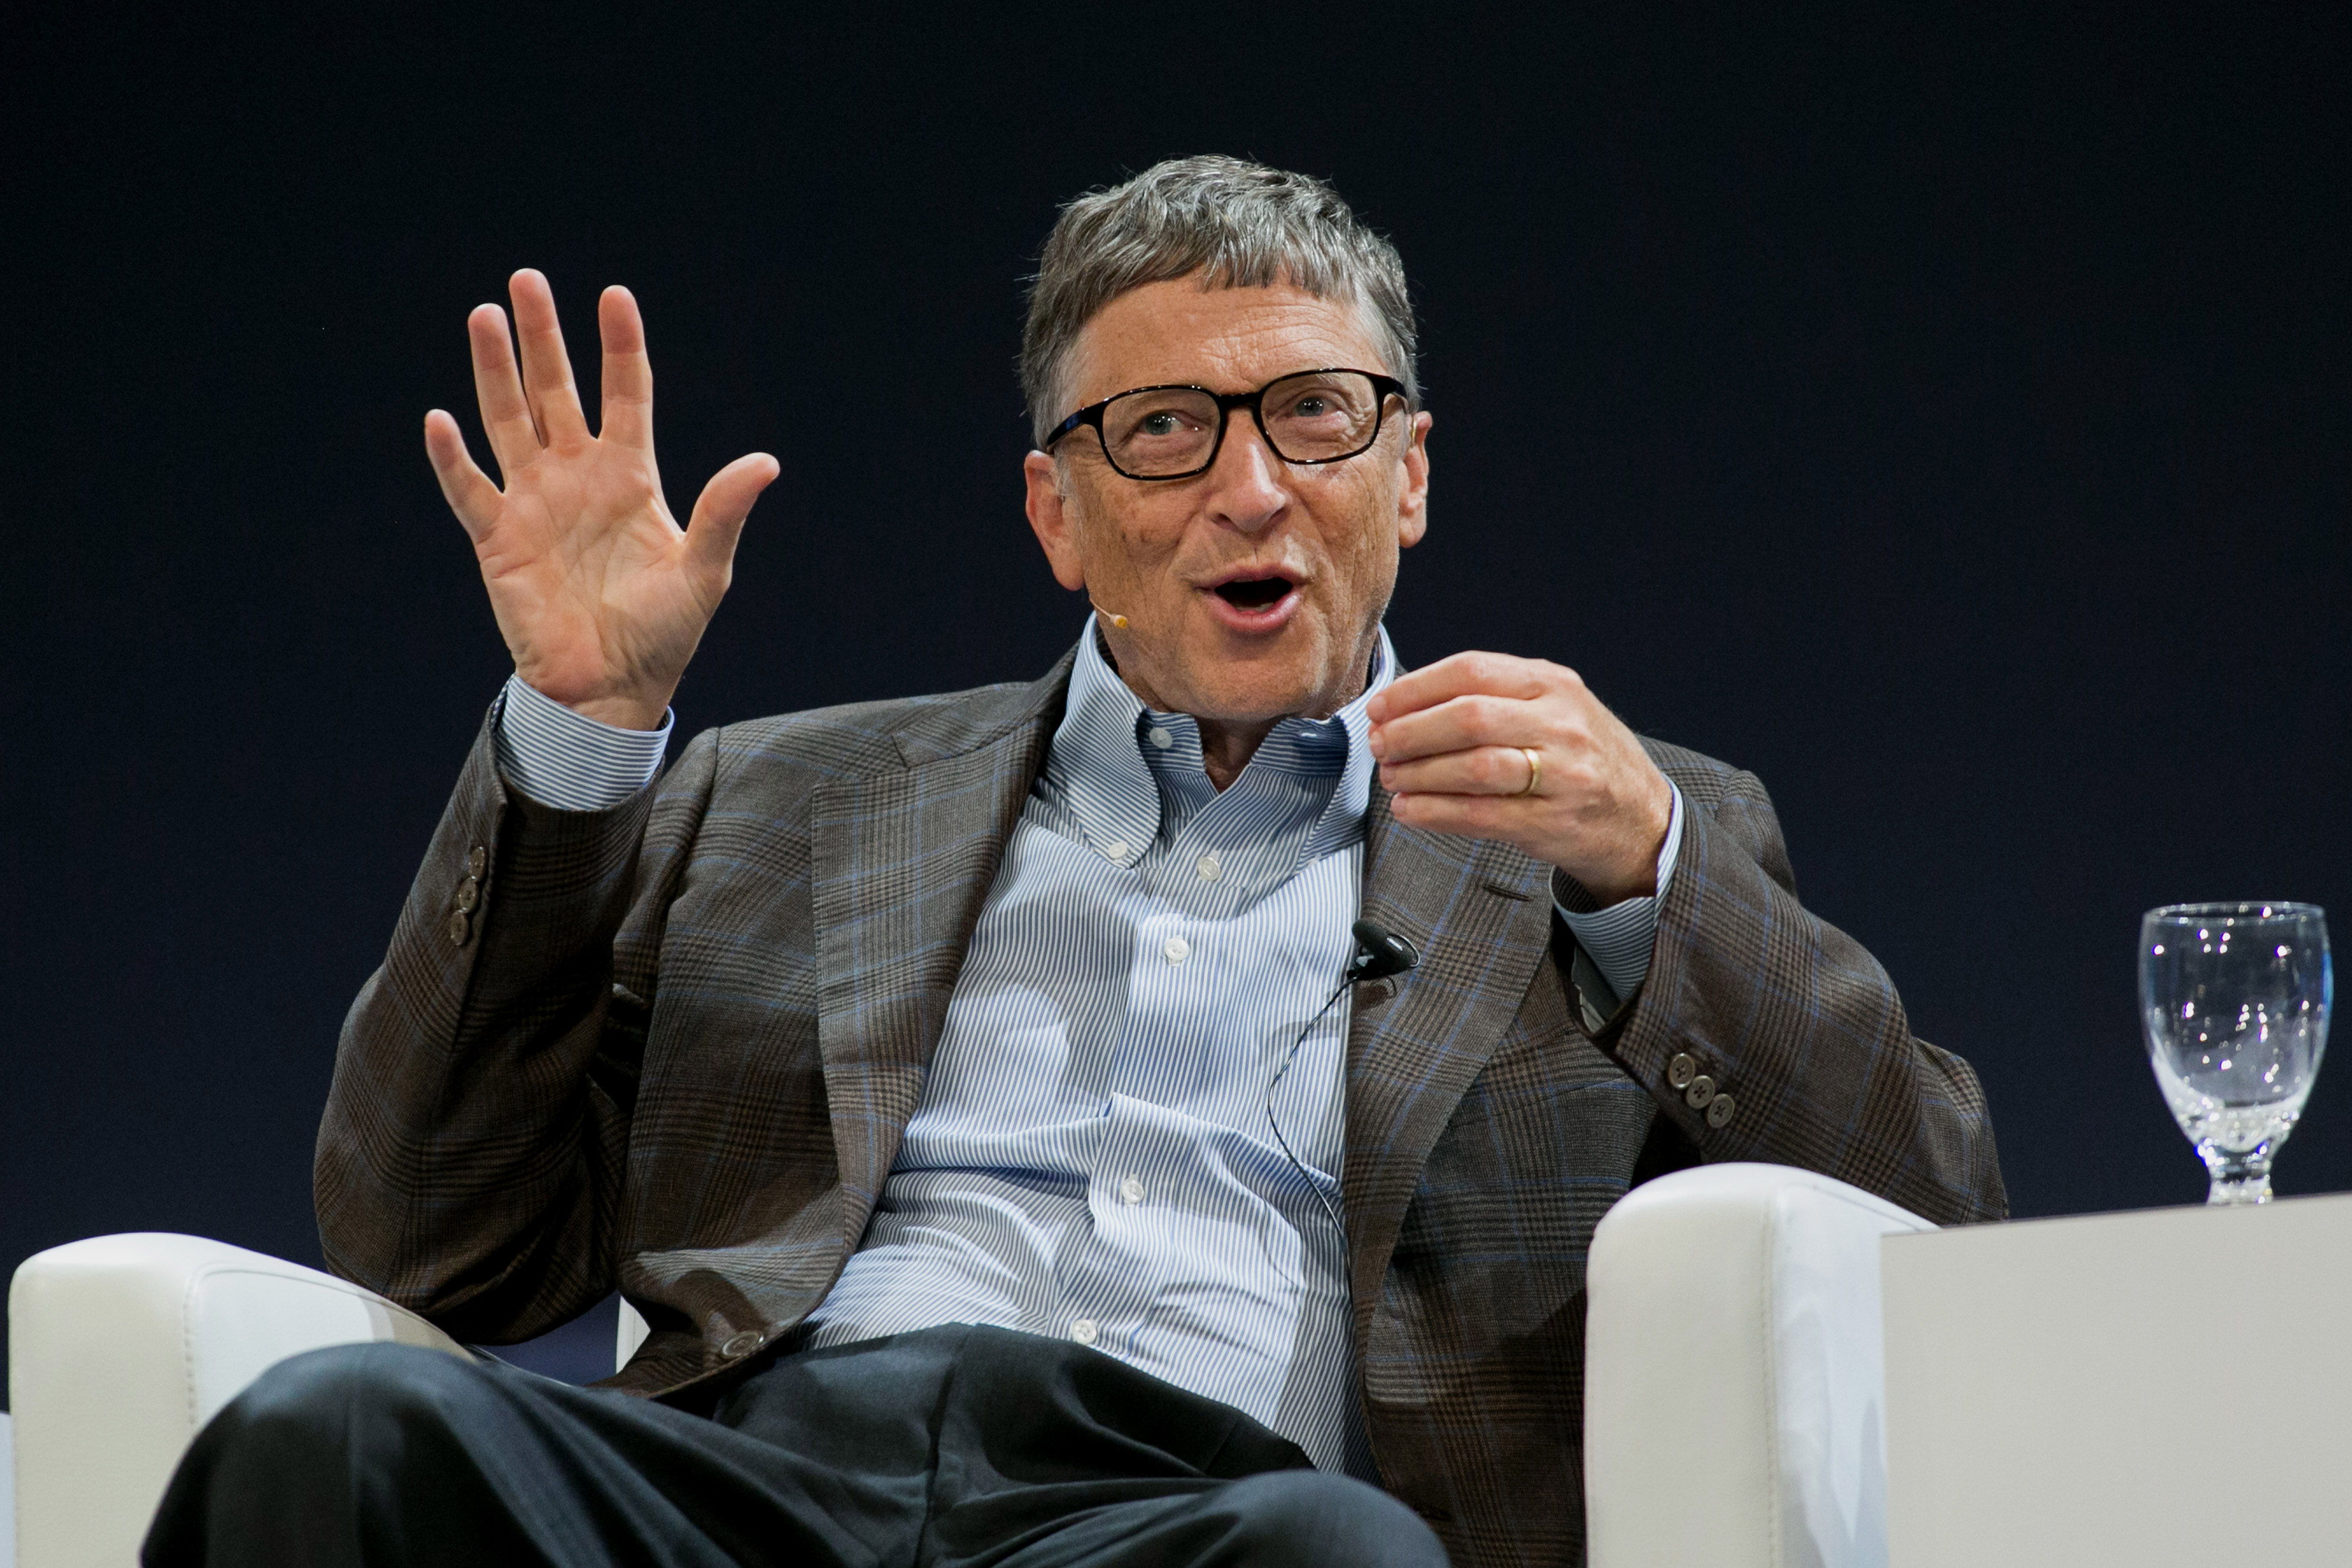 Bill Gates speaks during the Sibos financial services conference in Boston  on  Oct. 2, 2014.